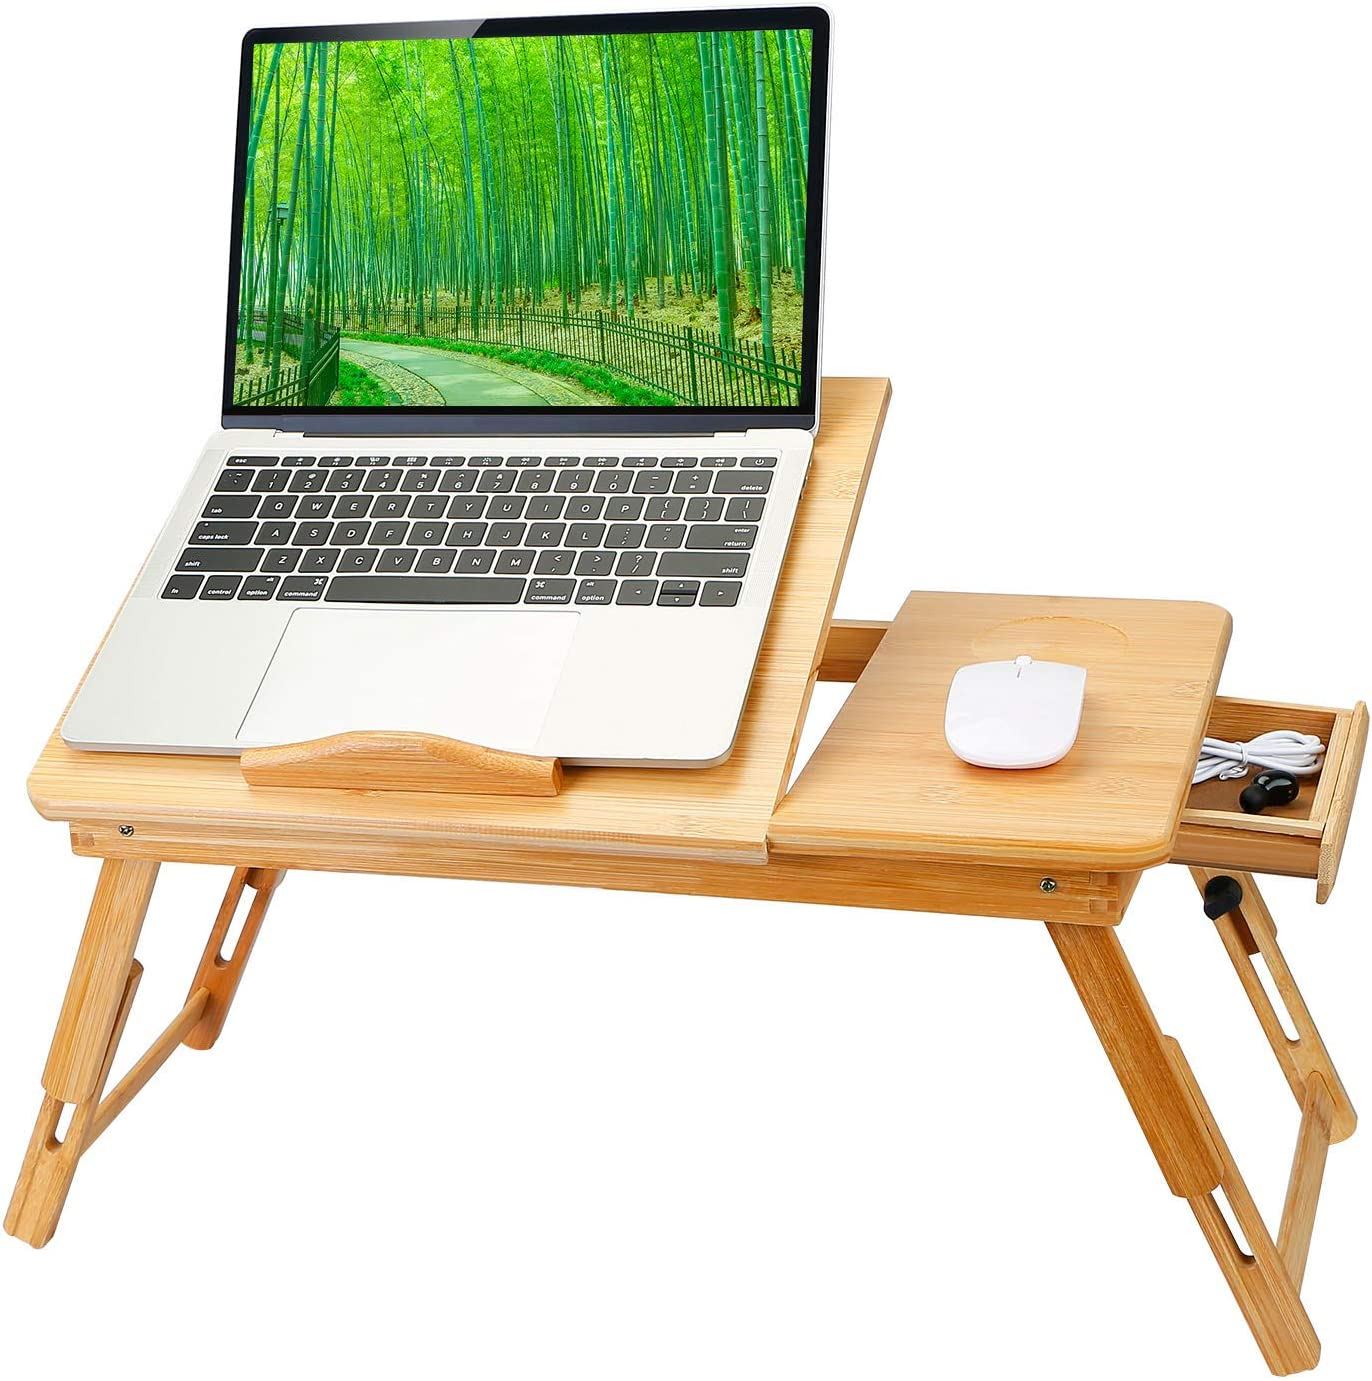 Bamboo Laptop Desk, Moclever Foldable Breakfast Tray with Drawer, Multi-Position Adjustable Tilt Surface Laptop Stand for Bed, Work,Study,Reading, Eating Food